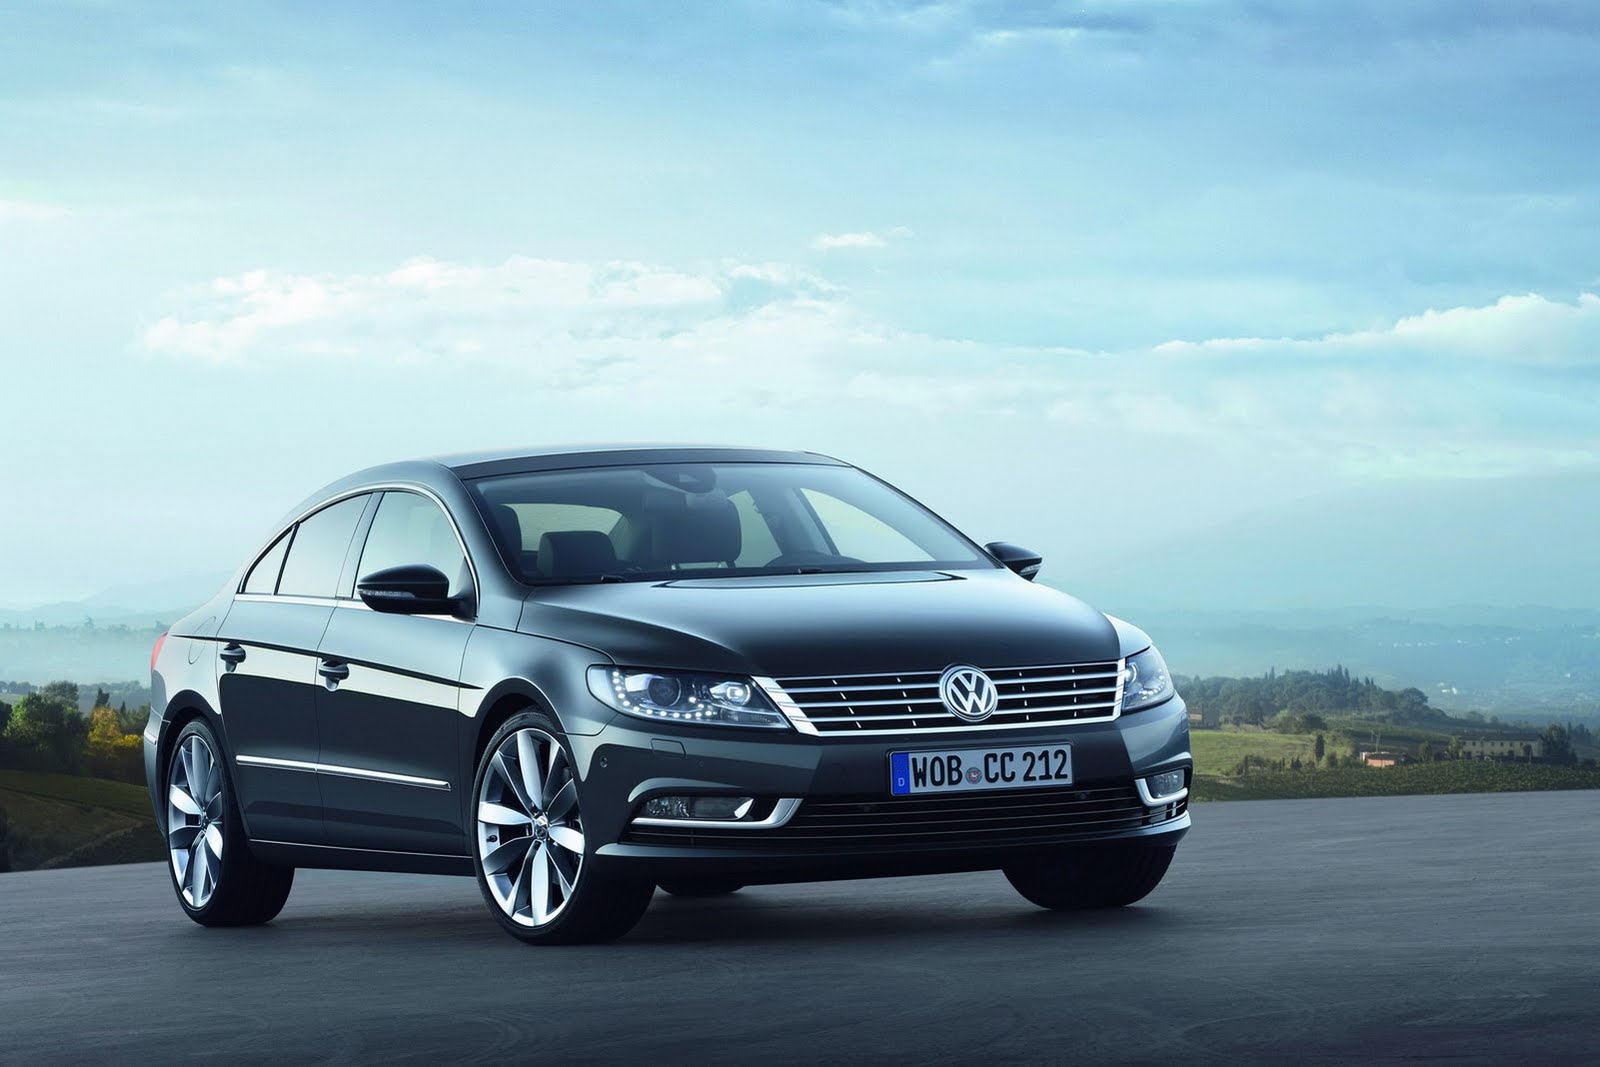 Volkswagen Passat CC 1.4 2013 photo - 5